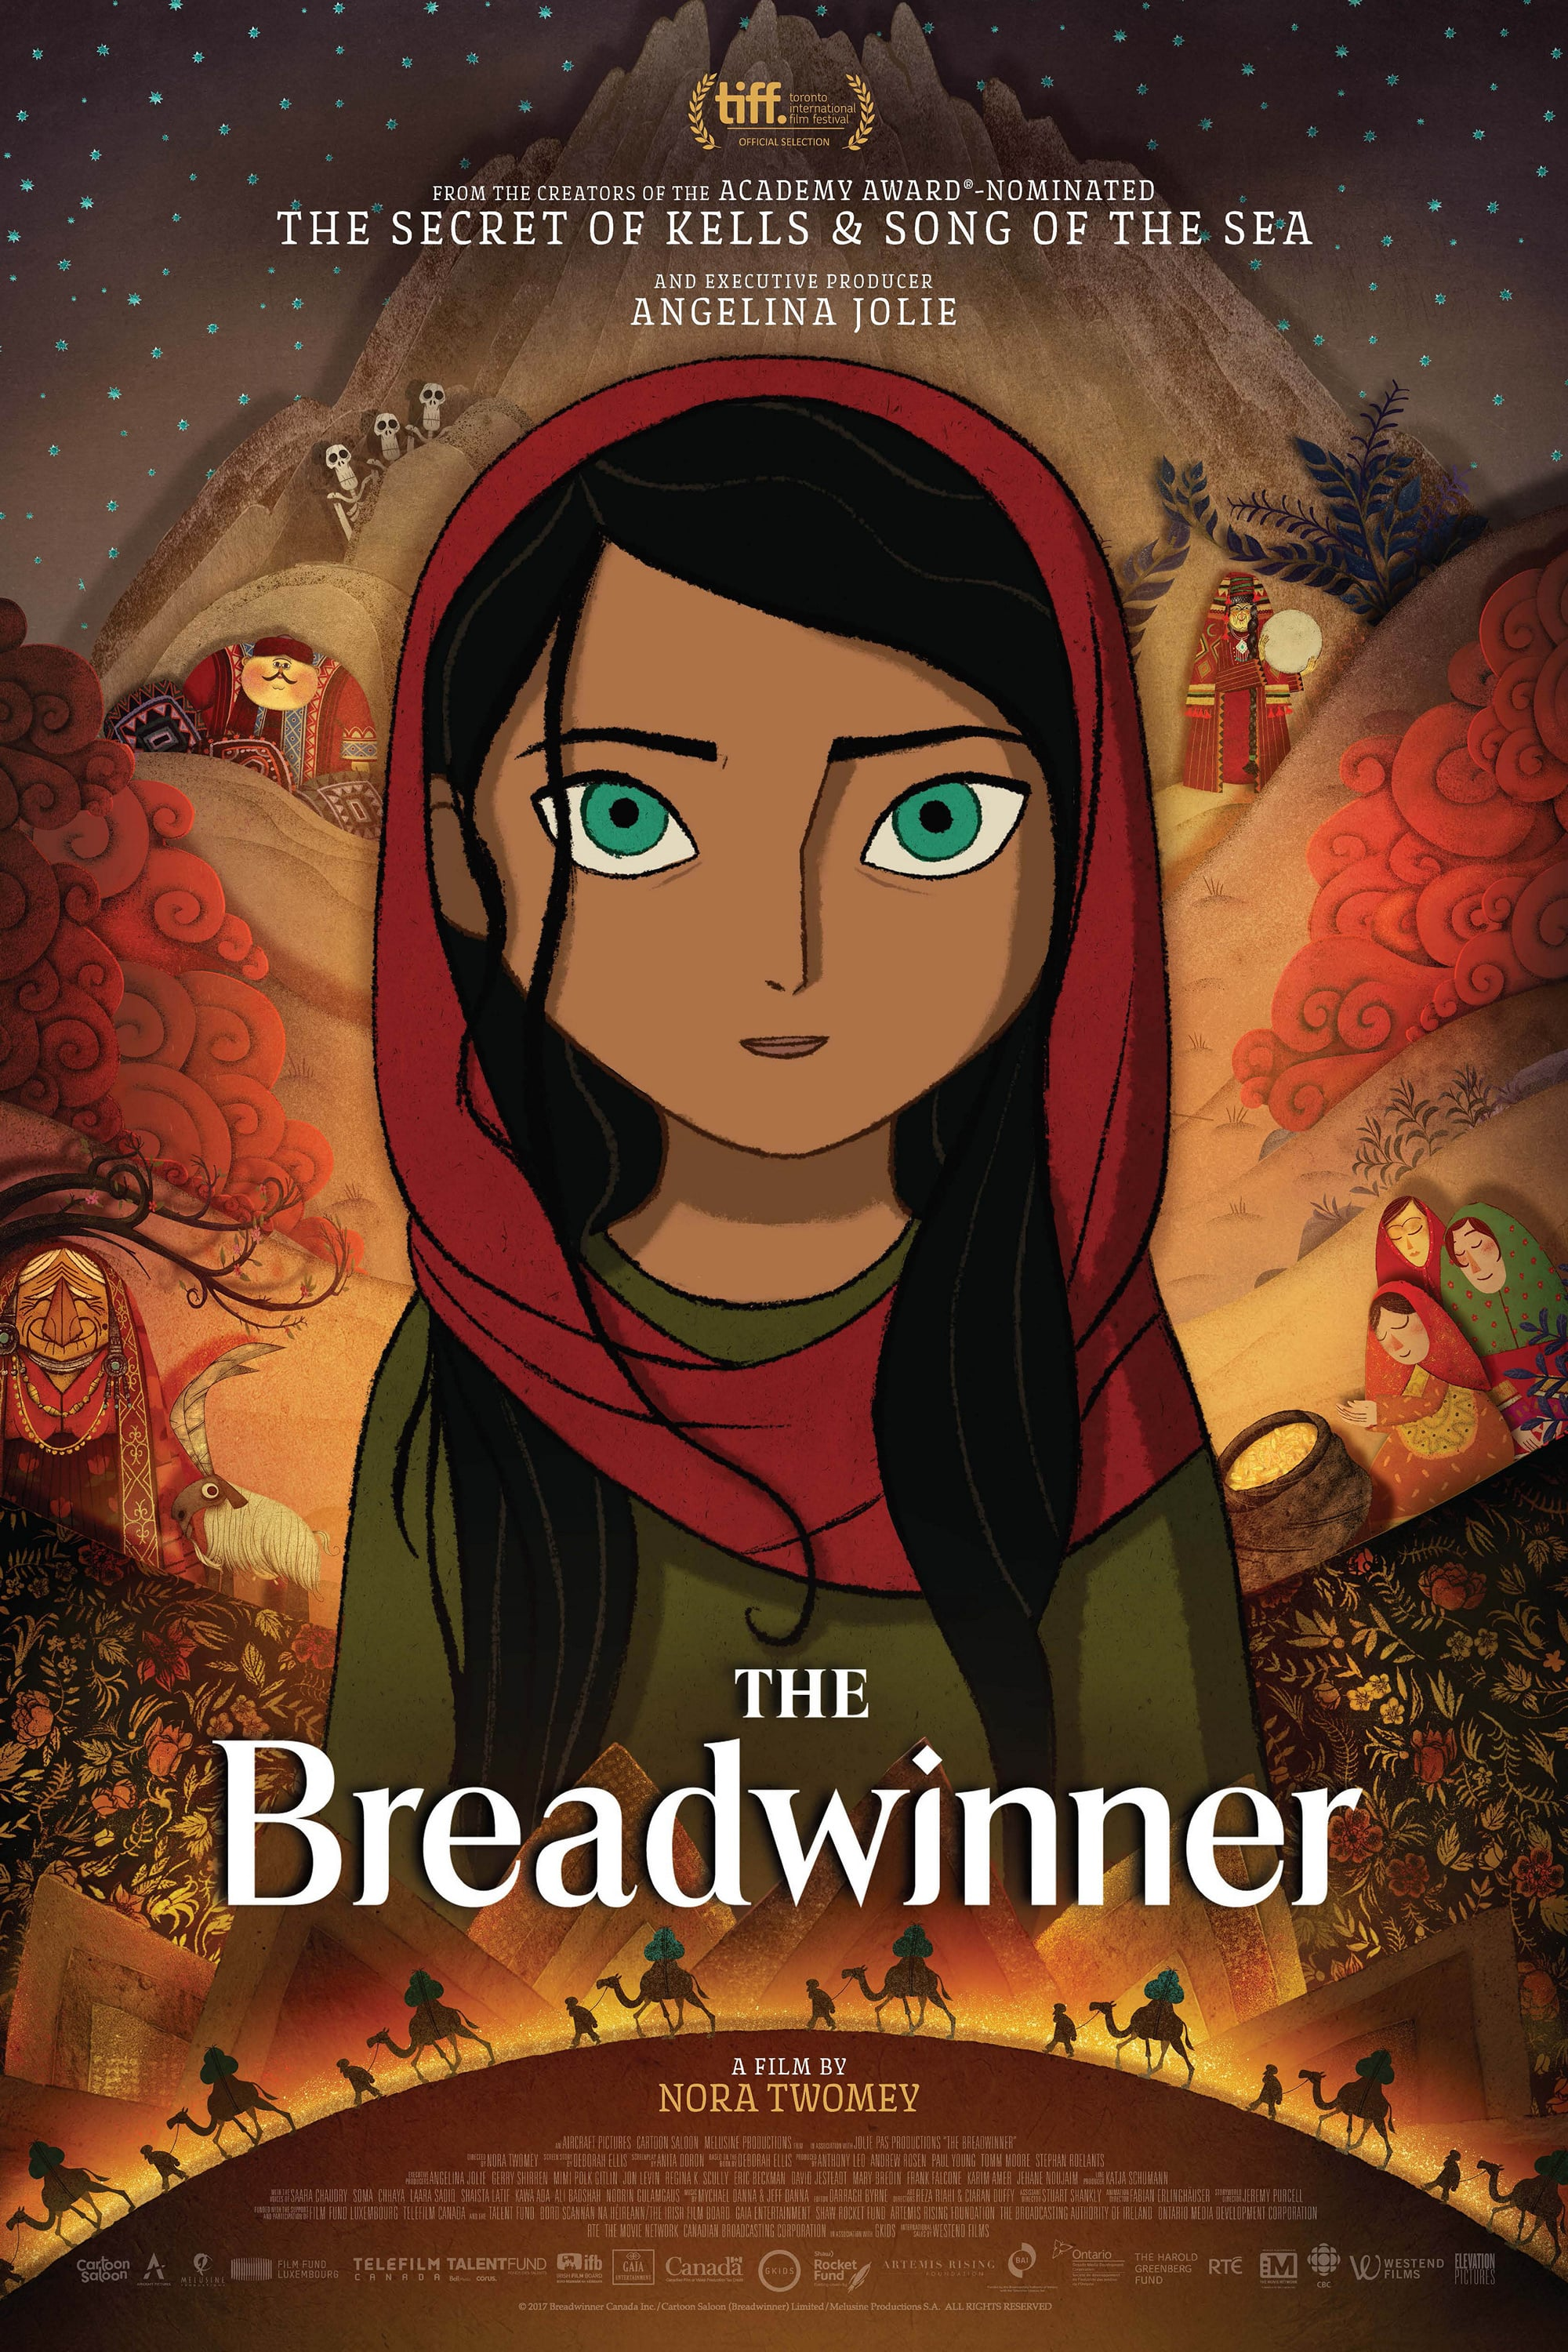 Movie poster of The Breadwinner